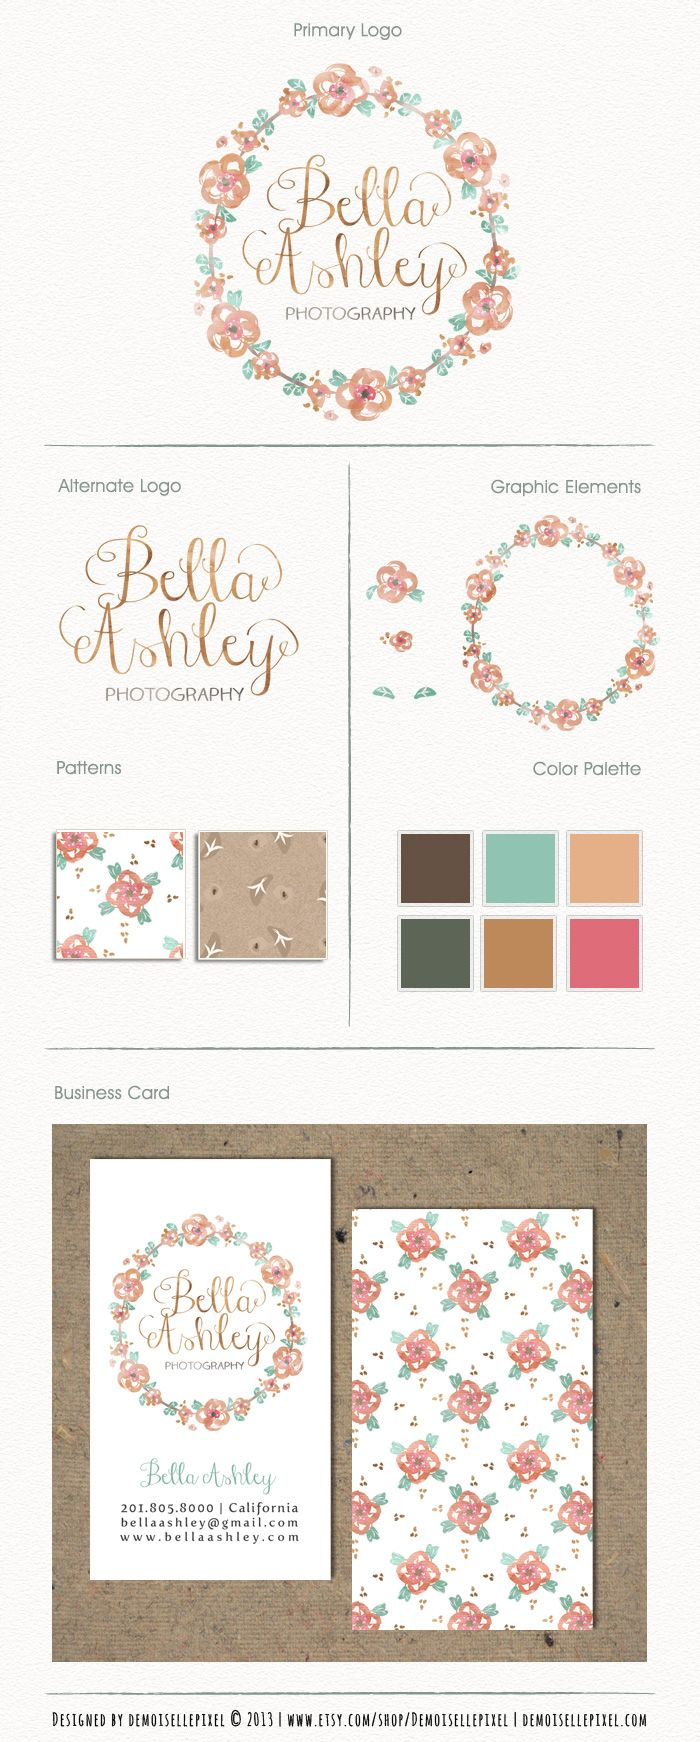 Branding Package with logo, watercolor floral wreath design : https://www.etsy.com/listing/156761825/branding-package-custom-premade-logo-set?ref=shop_home_active